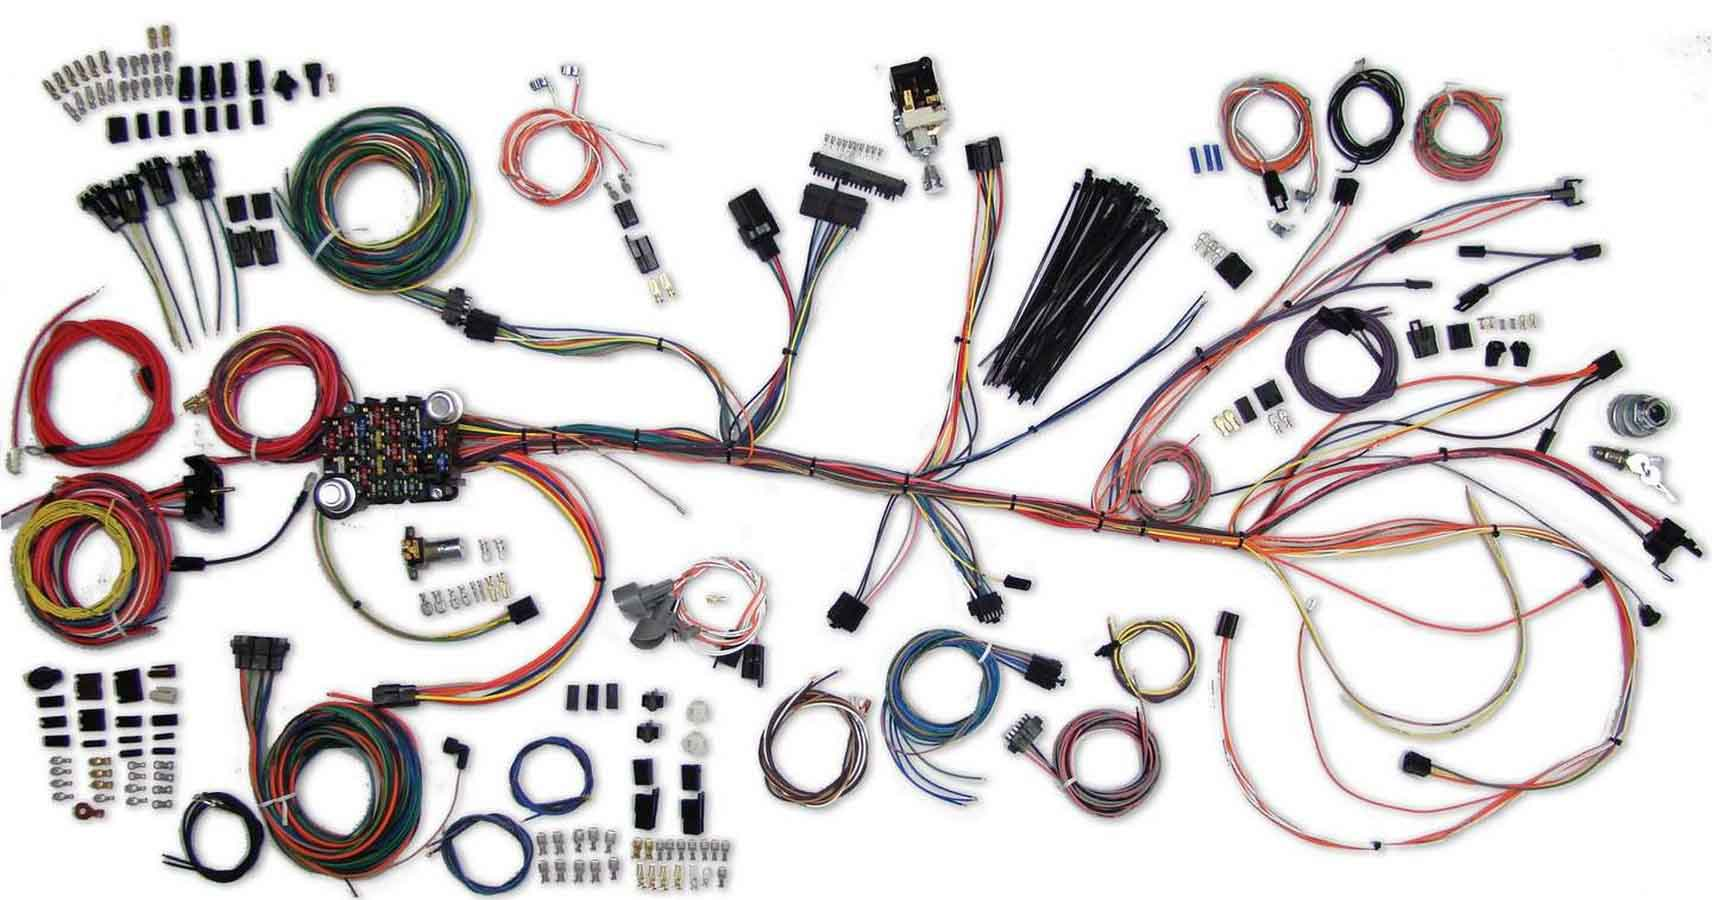 Shop For Wiring Harnesses Arob Performance Parts 66 Nova Harness 64 67 Chevelle Wire System